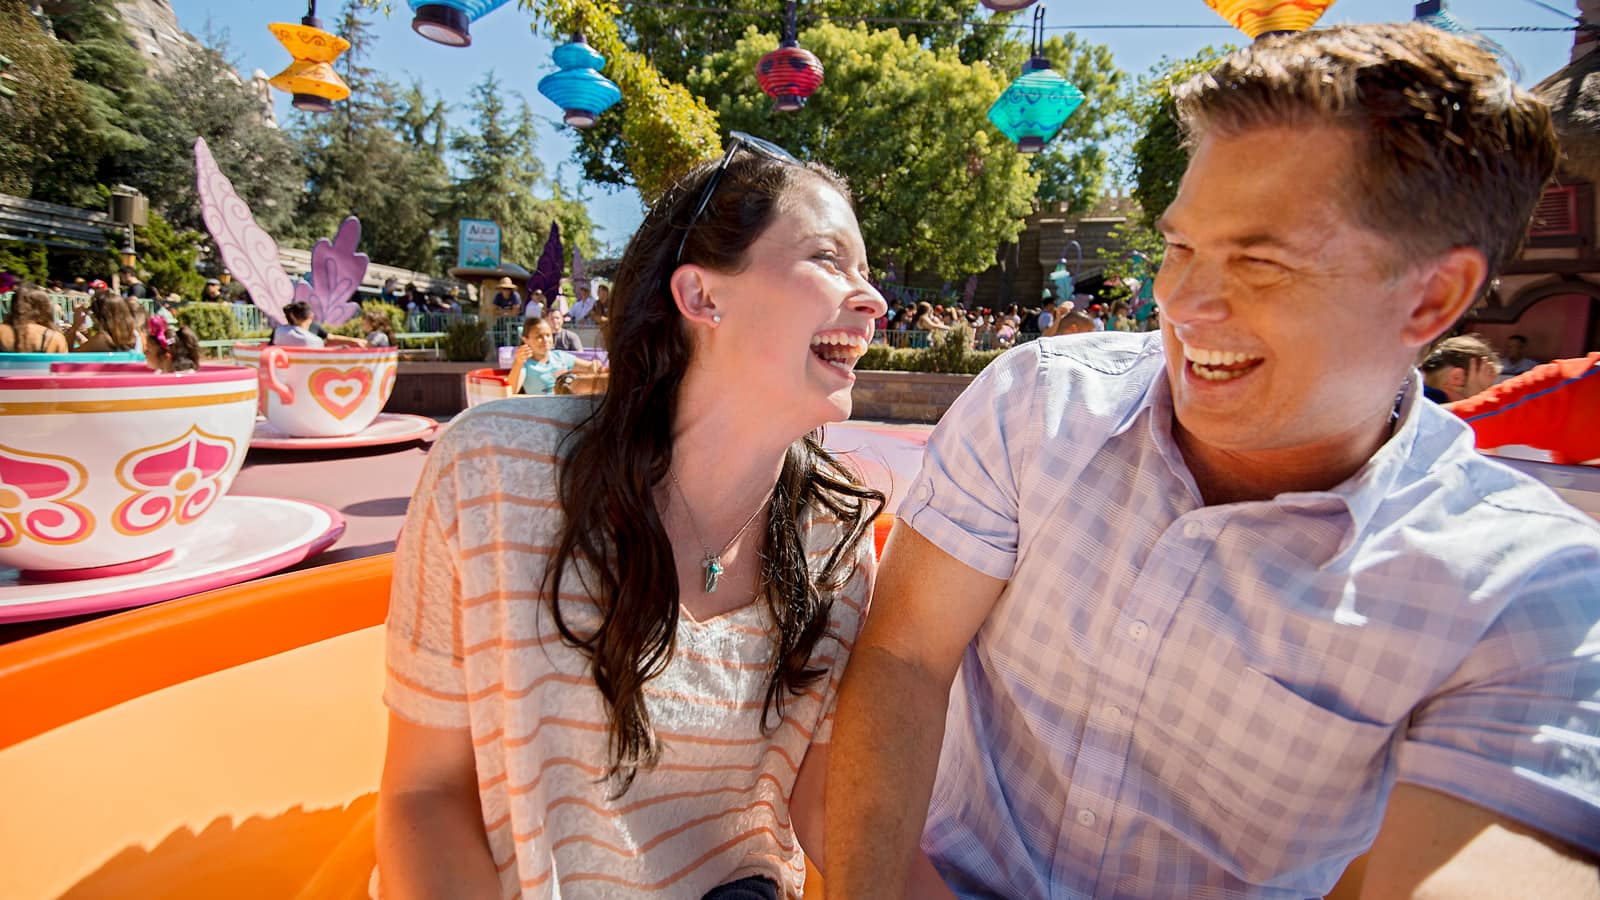 A man and a woman smile as they spin around in tea cups at the Mad Tea Party attraction